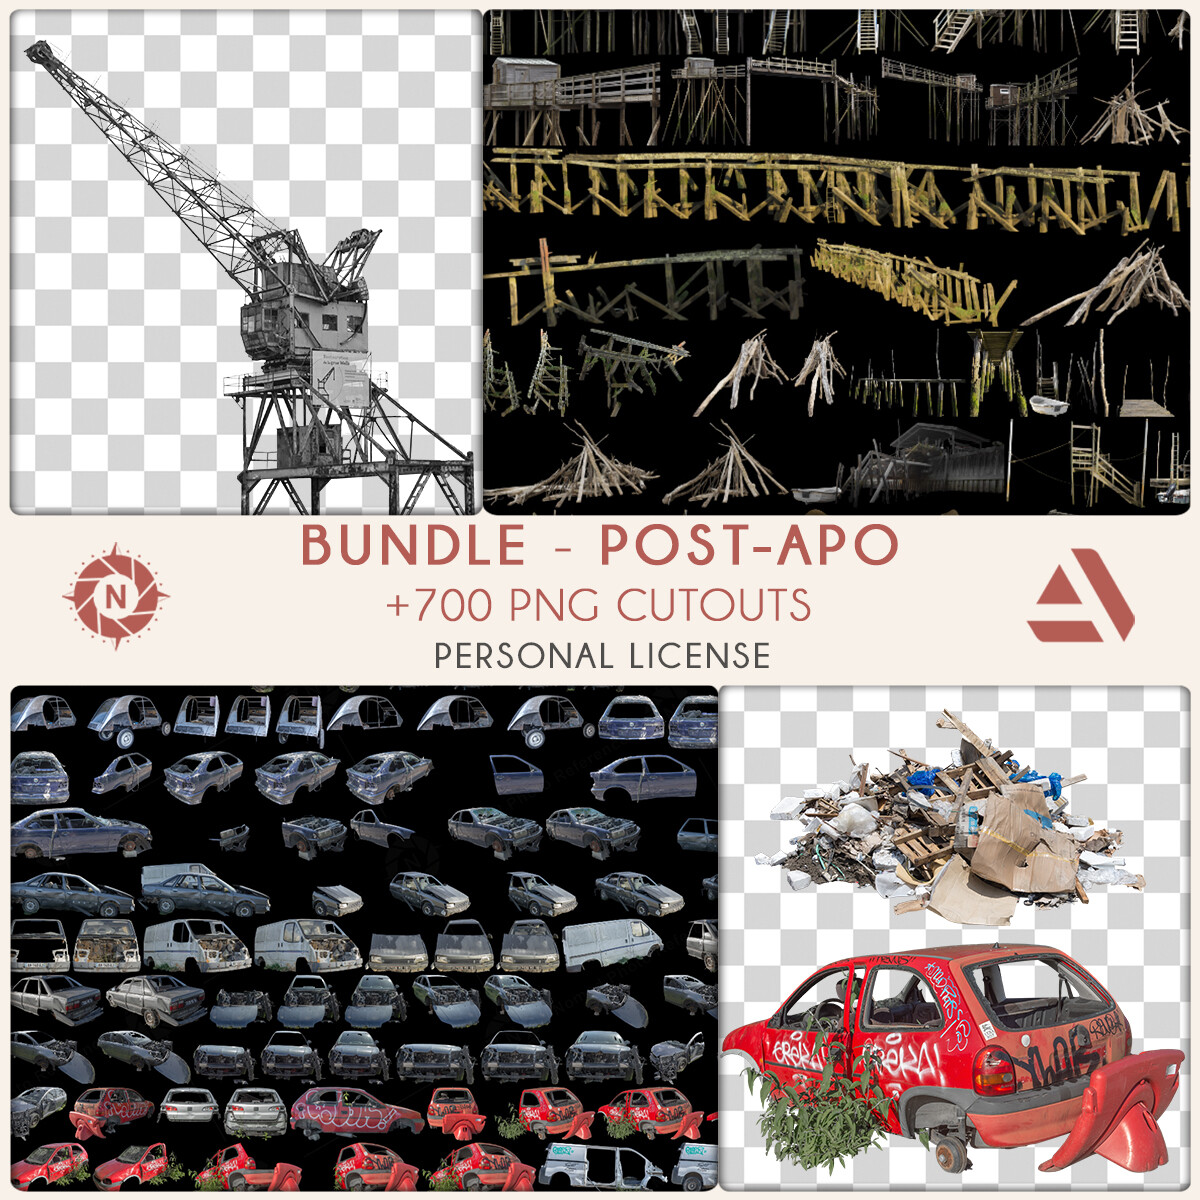 Bundle PNG Photo Packs: Post-Apocalyptic - Personal License  https://www.artstation.com/a/6276903